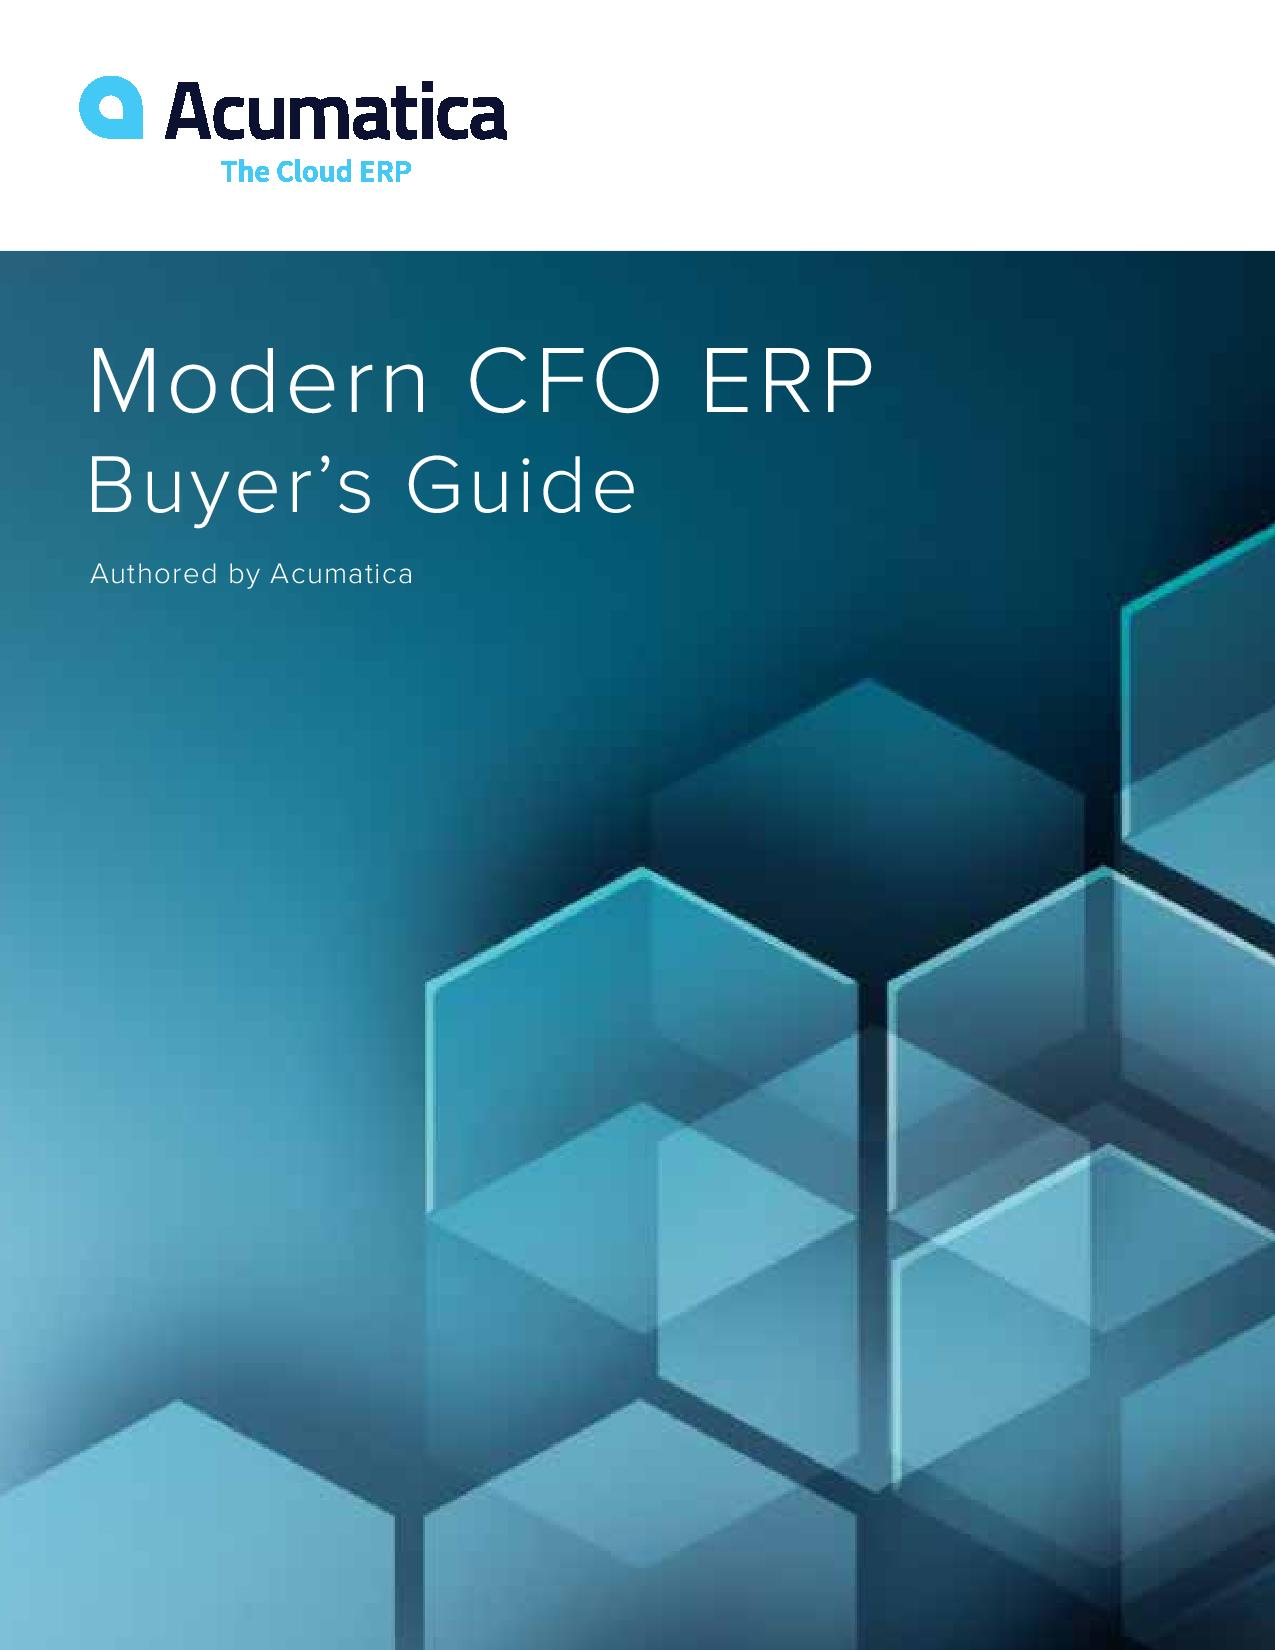 CFOs: Find the Right ERP Accounting Solution Faster, page 0